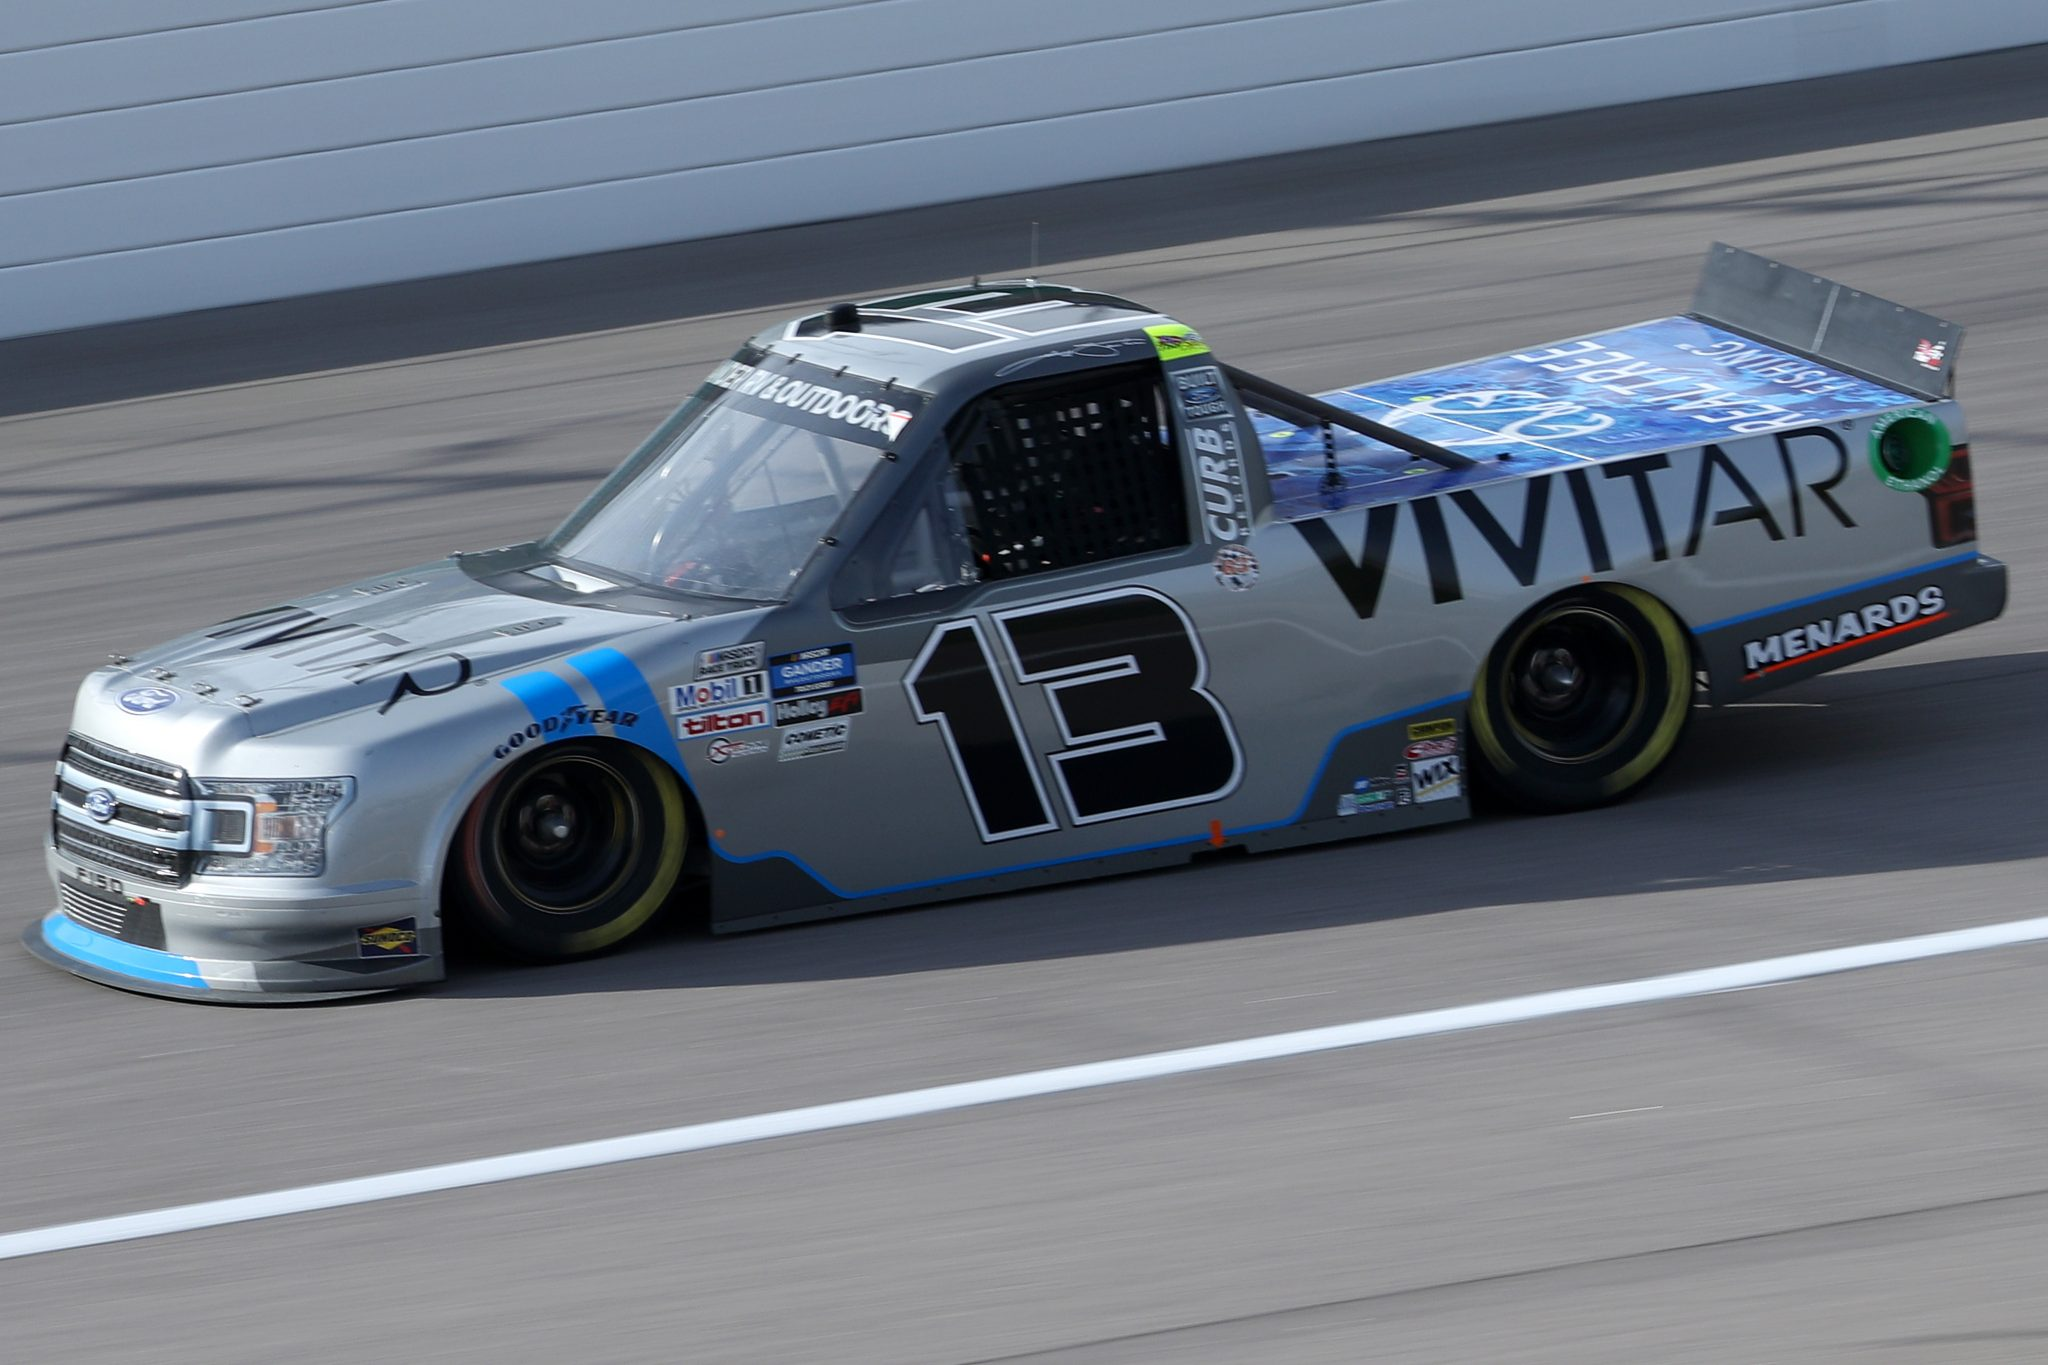 KANSAS CITY, KANSAS - OCTOBER 17: Johnny Sauter, driver of the #13 Vivitar Ford, drives during the NASCAR Gander RV & Outdoors Truck Series Clean Harbors 200at Kansas Speedway on October 17, 2020 in Kansas City, Kansas. (Photo by Chris Graythen/Getty Images) | Getty Images